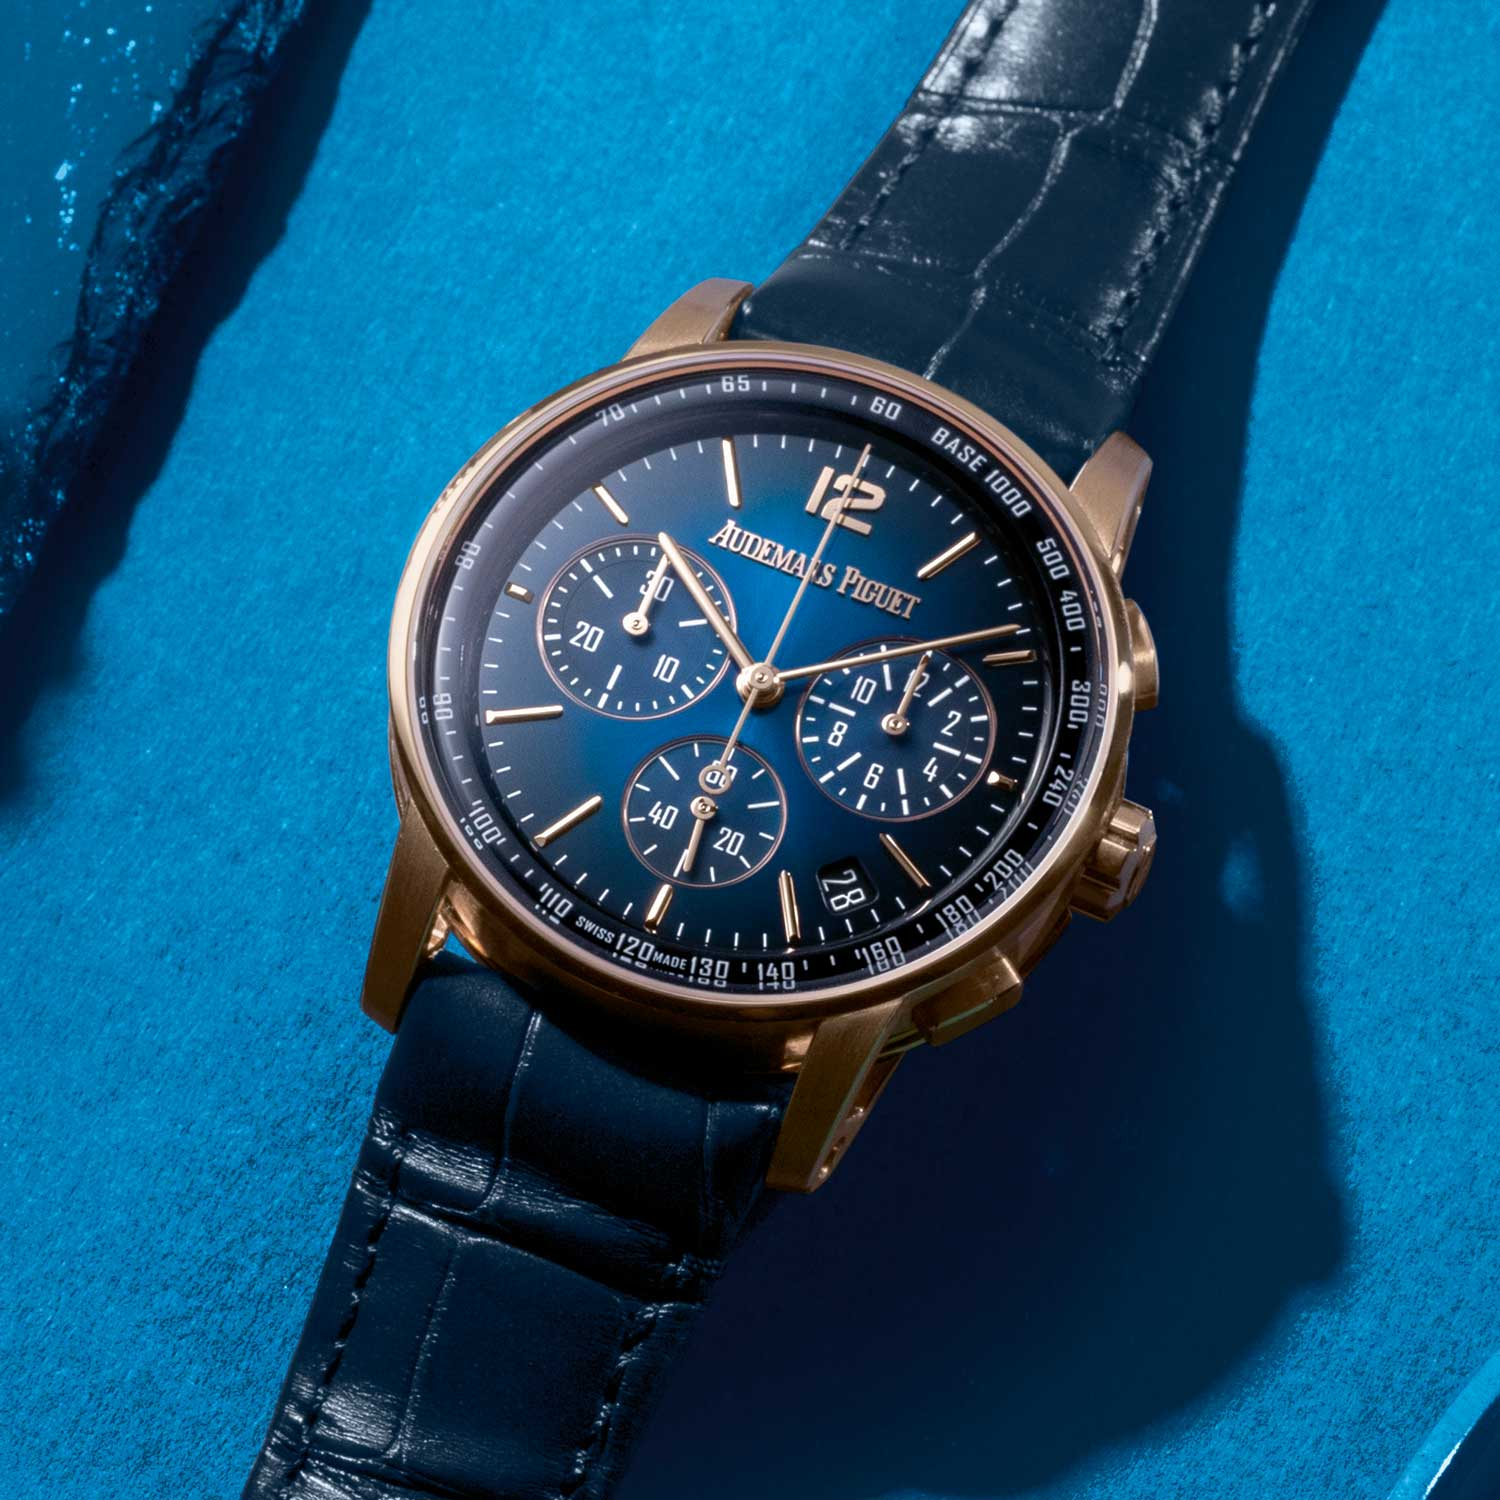 Audemars Piguet CODE 11.59 by Audemars Piguet Selfwinding Chronograph in rose gold with a smoked blue lacquered dial.